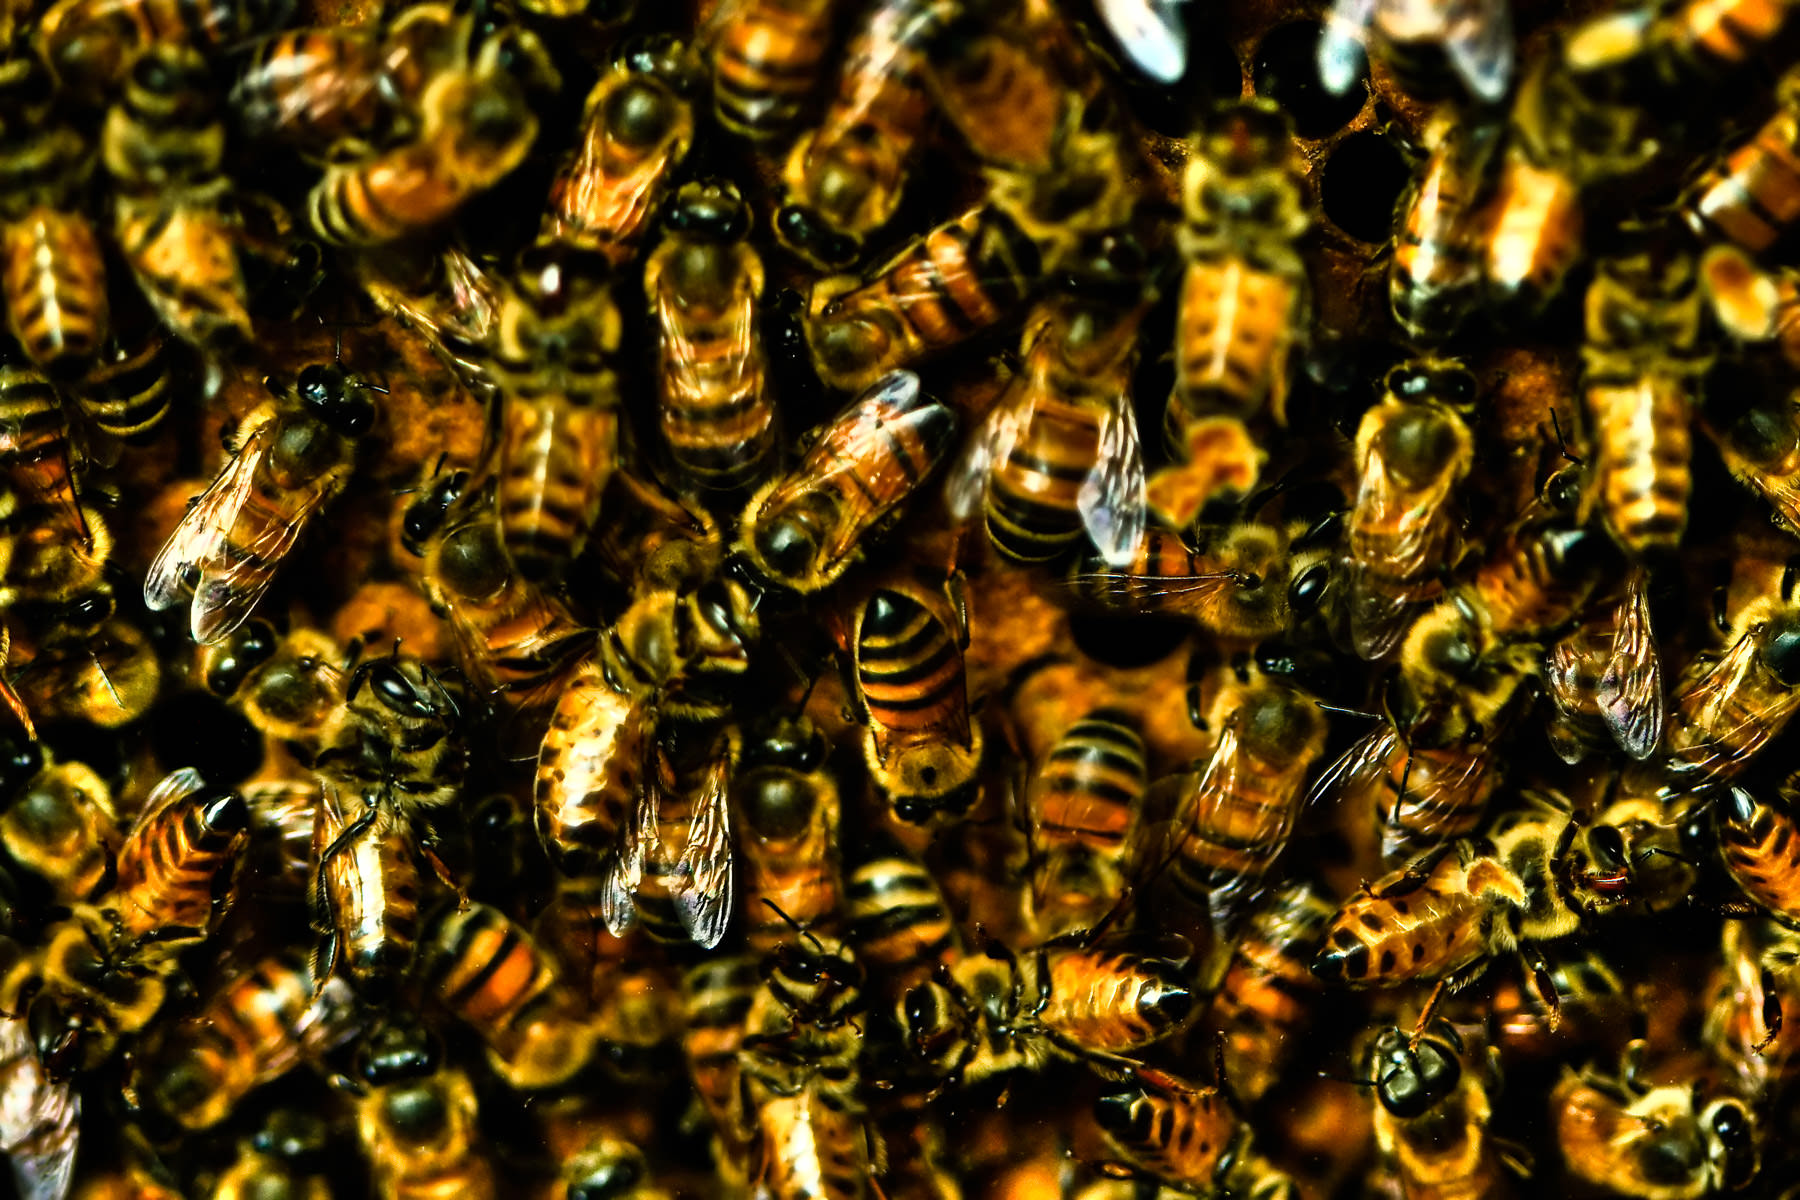 Bees in a hive at Houston's Cockrell Butterfly Center.